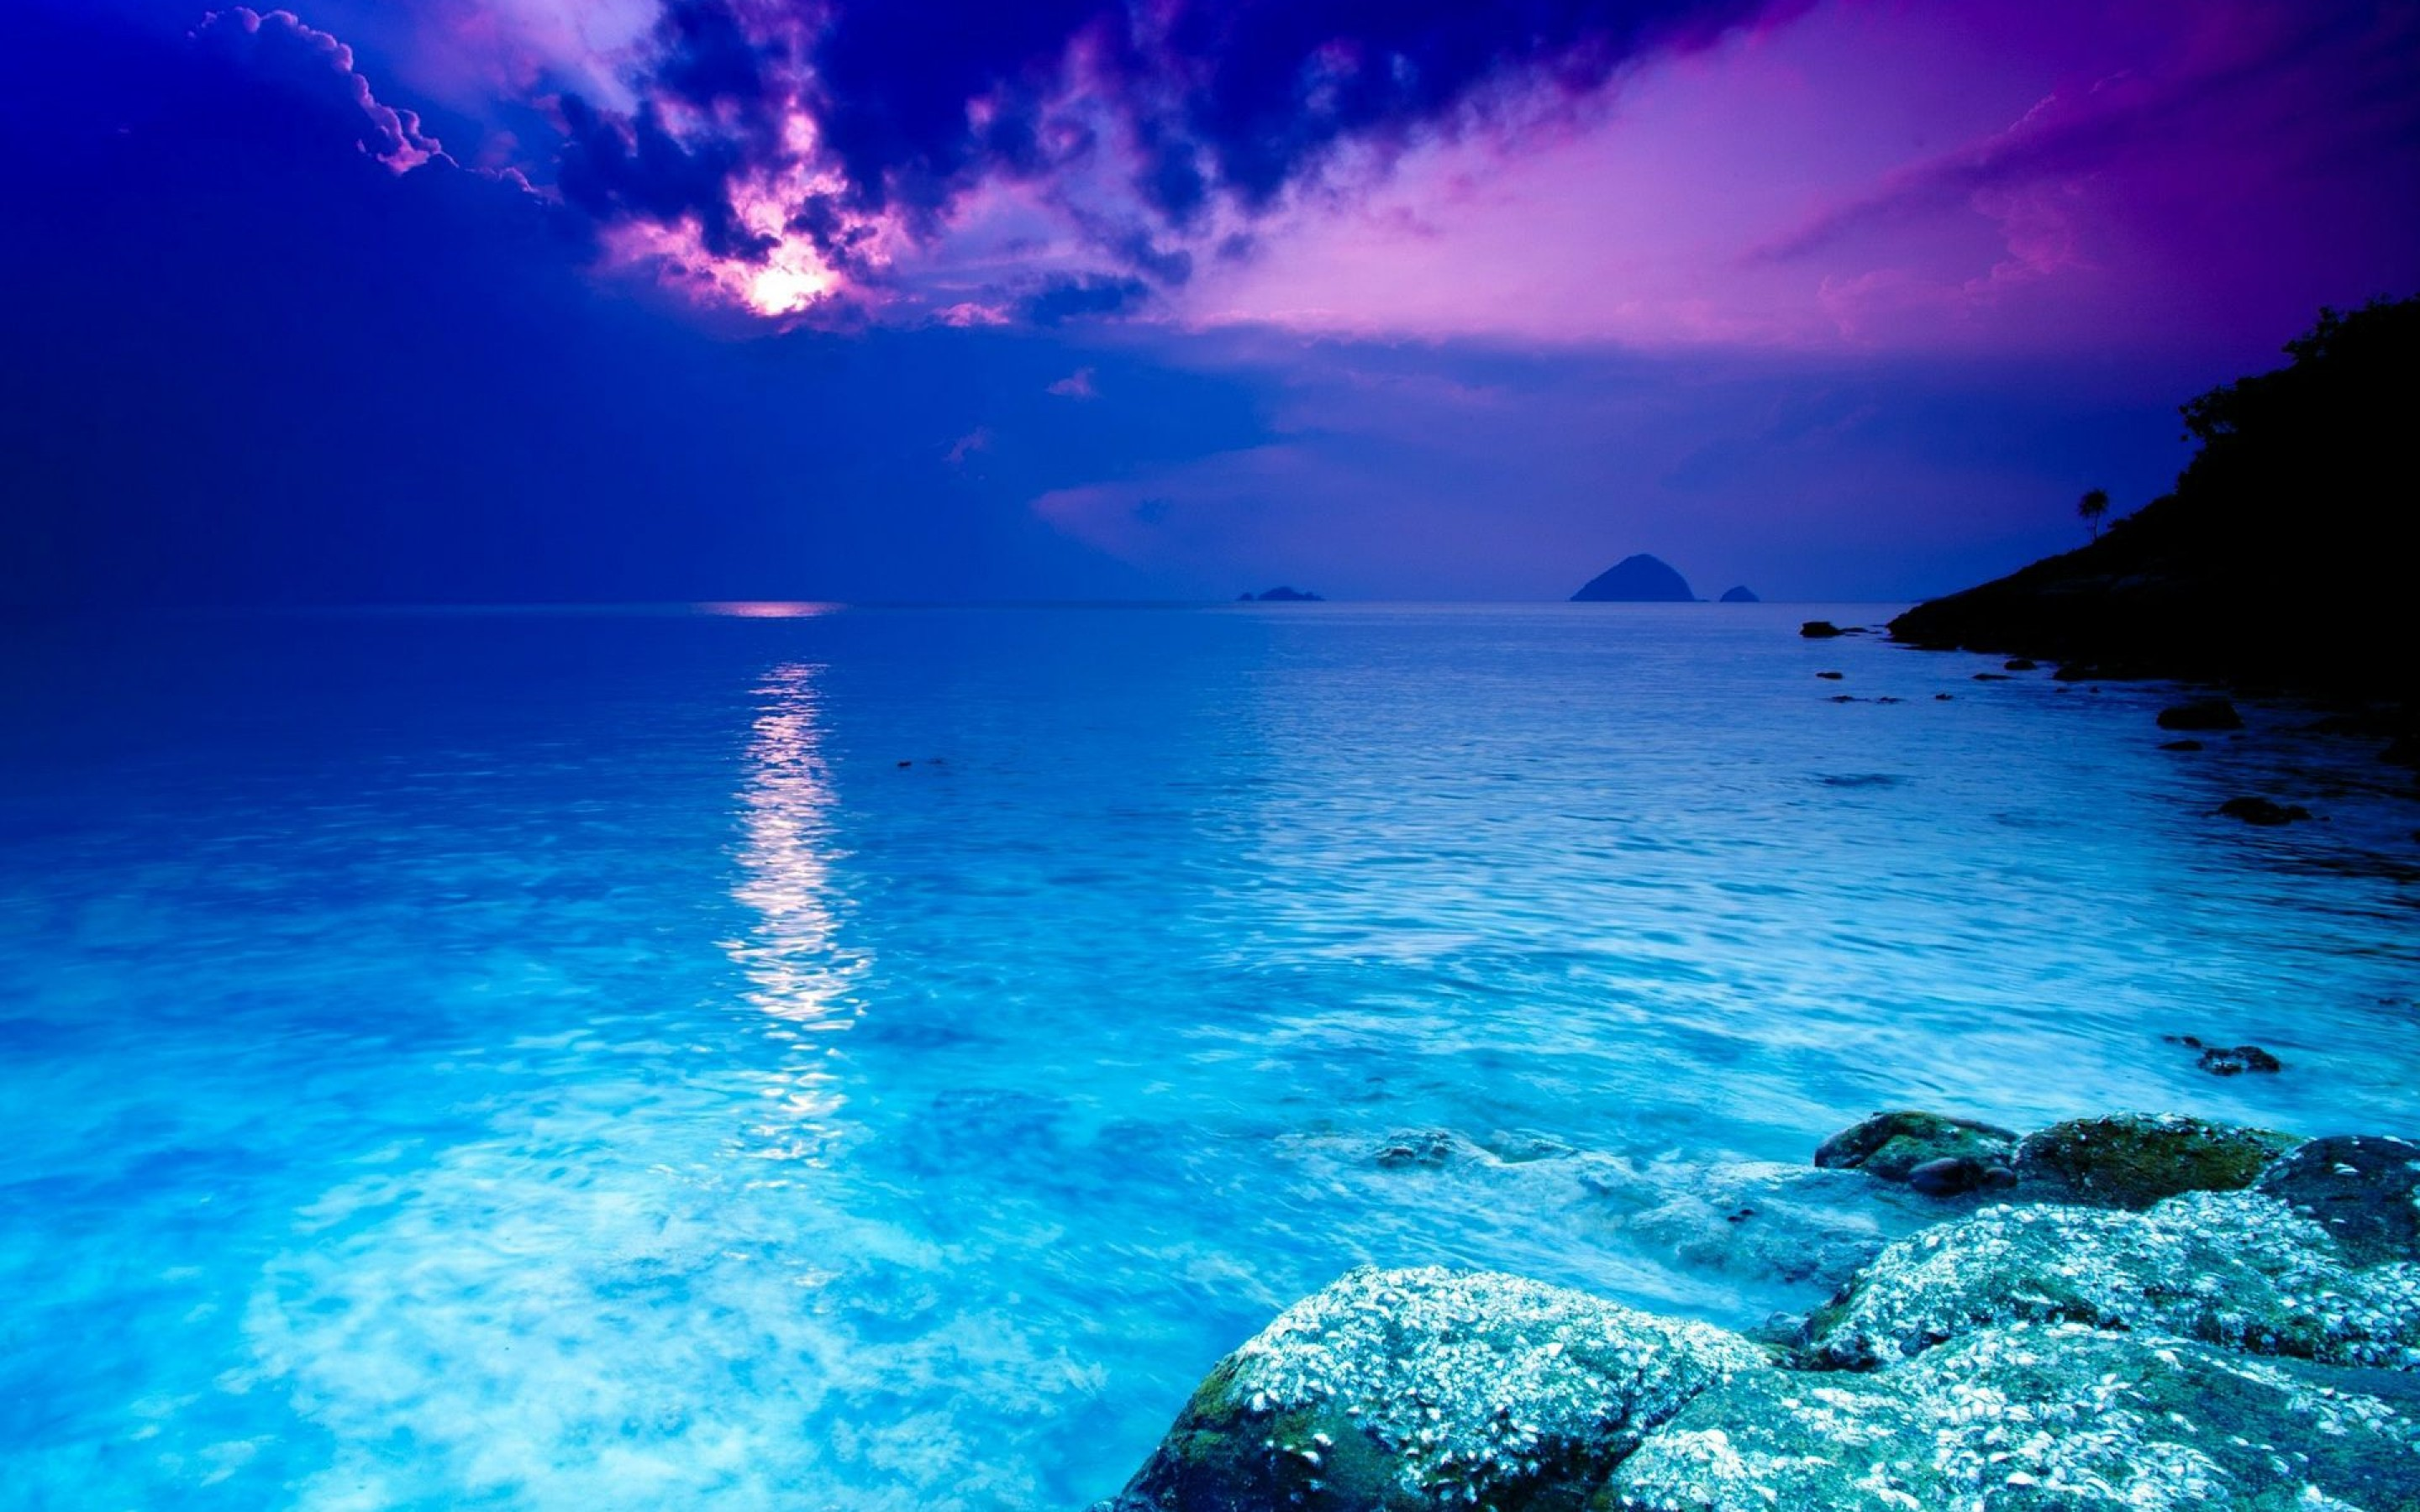 sea desktop backgrounds wallpaper high definition high quality